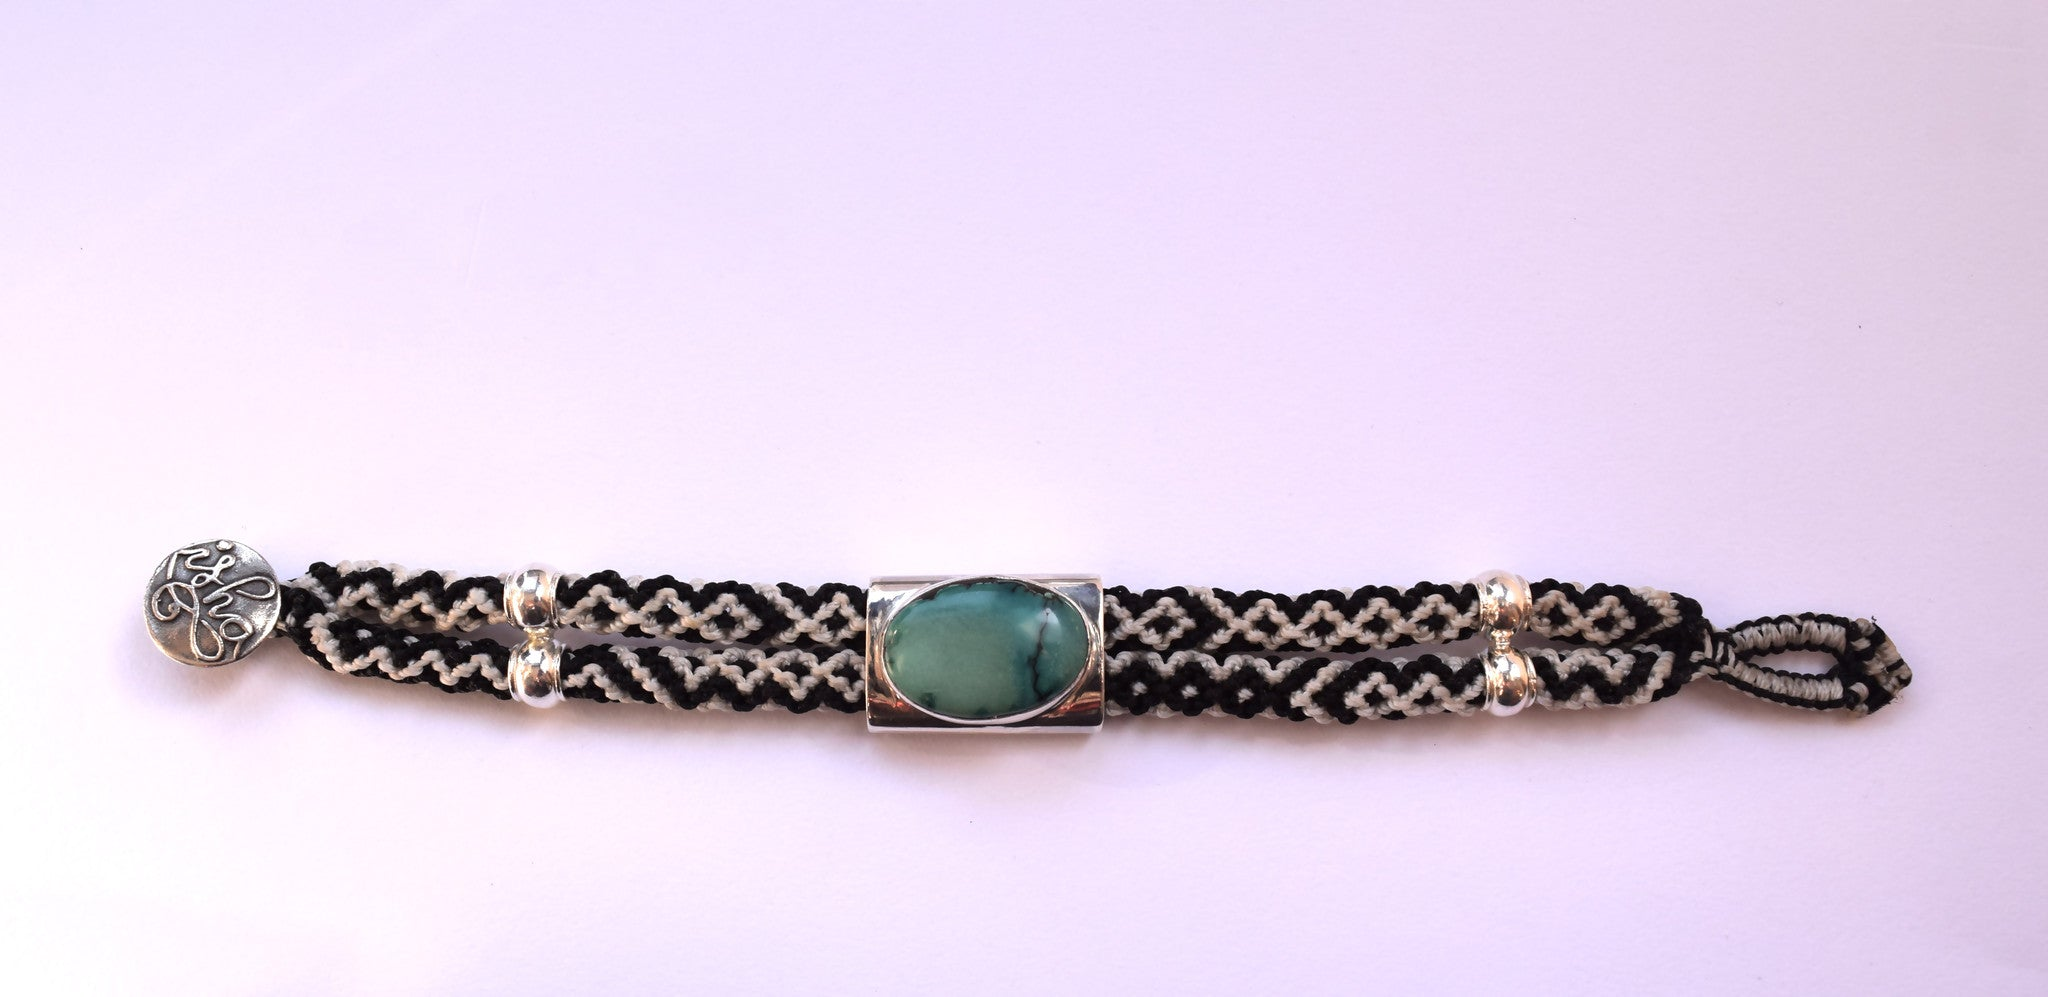 stone white isha all collections products black in green elafi dsc bracelet rope with double